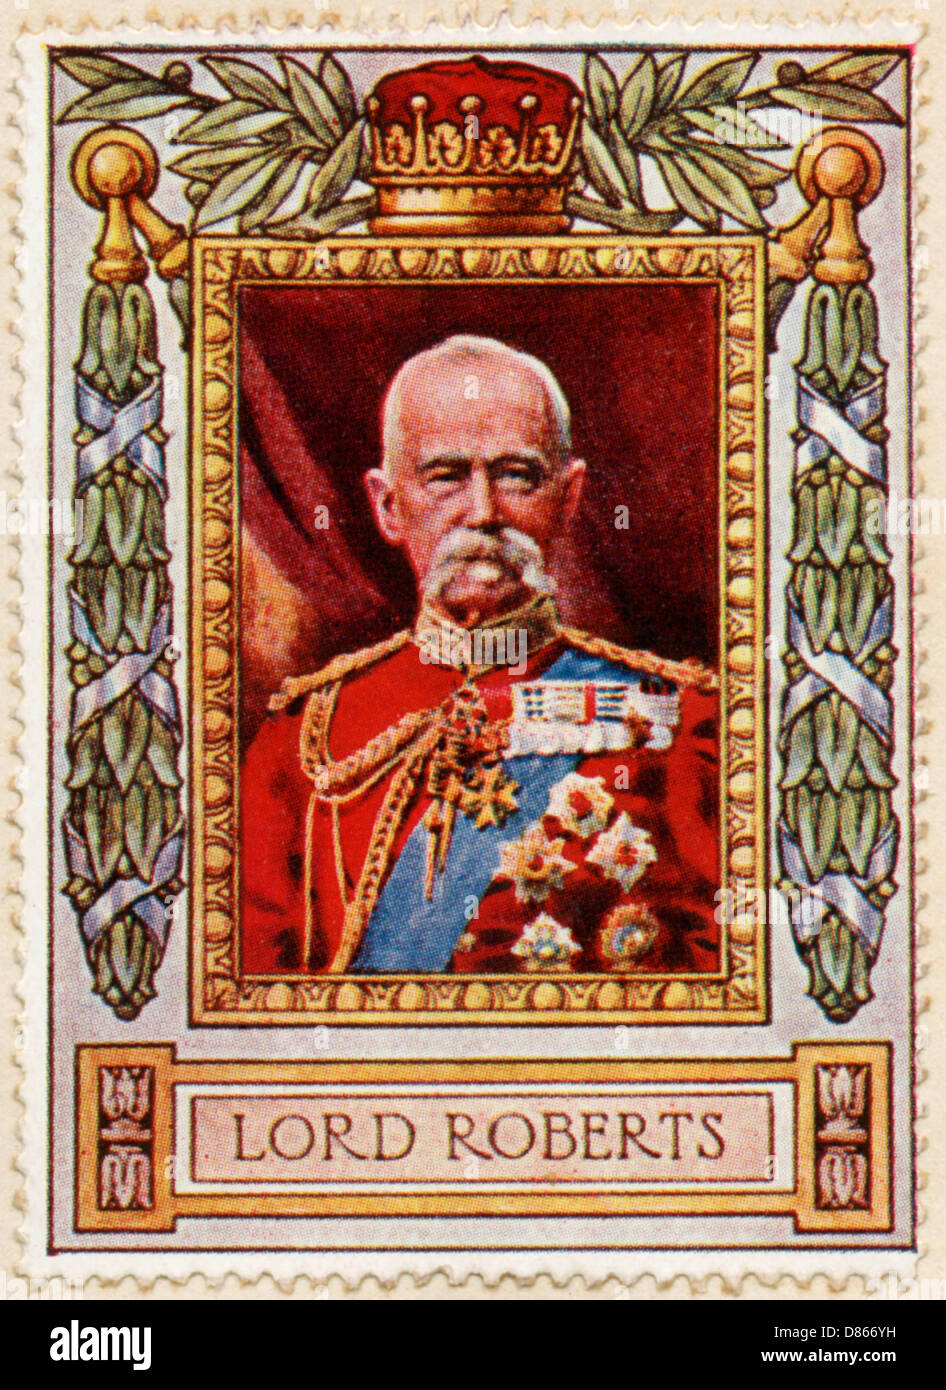 Lord Roberts Stamp - Stock Image